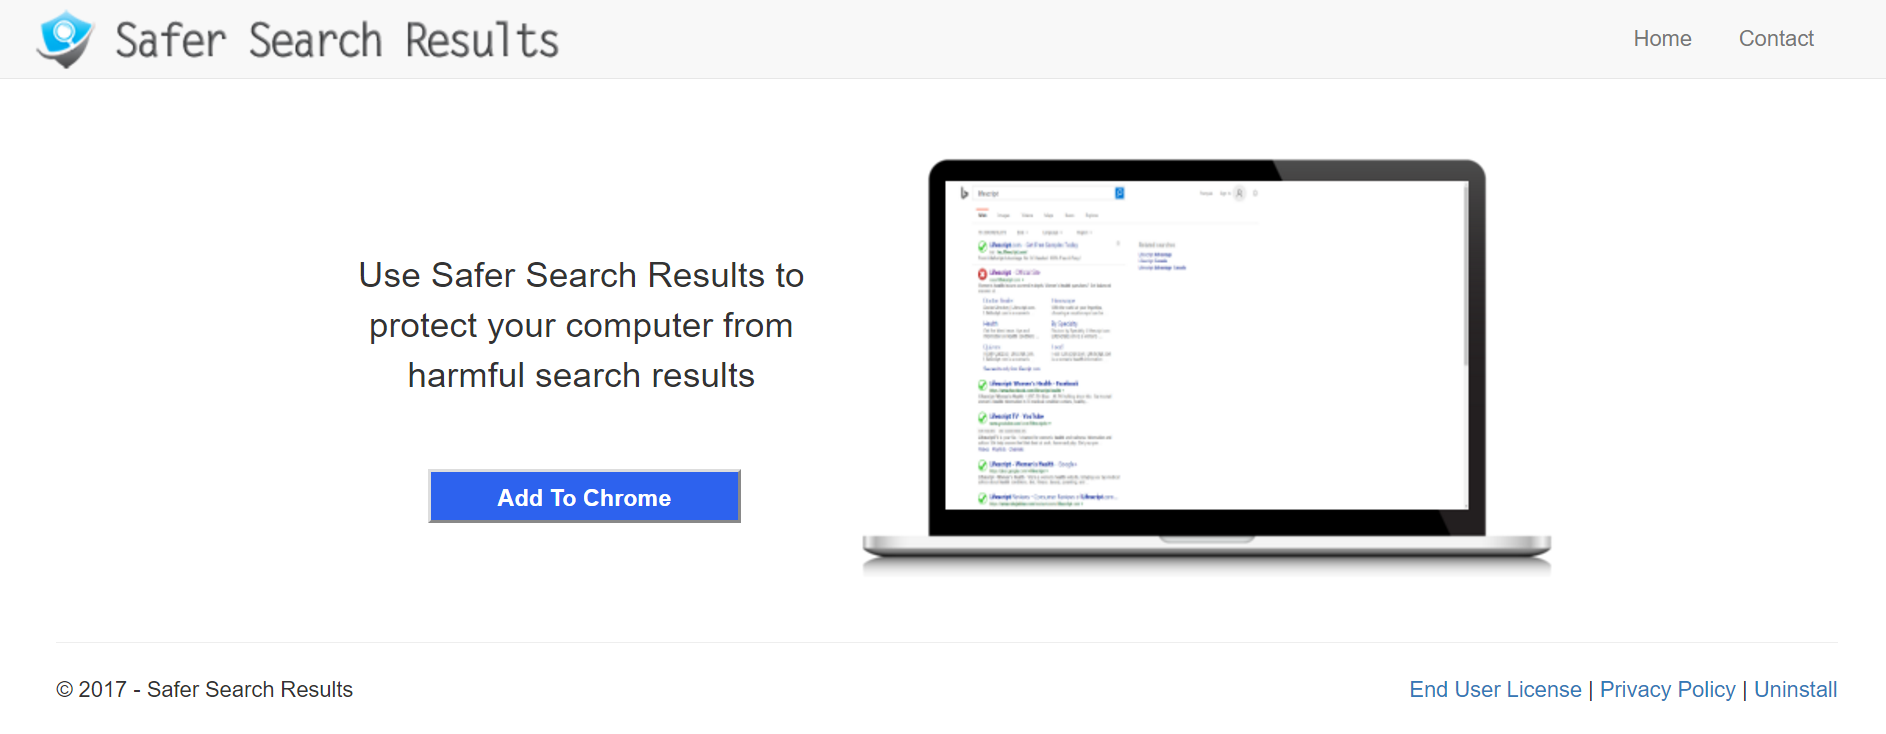 ads by Safer Search Results